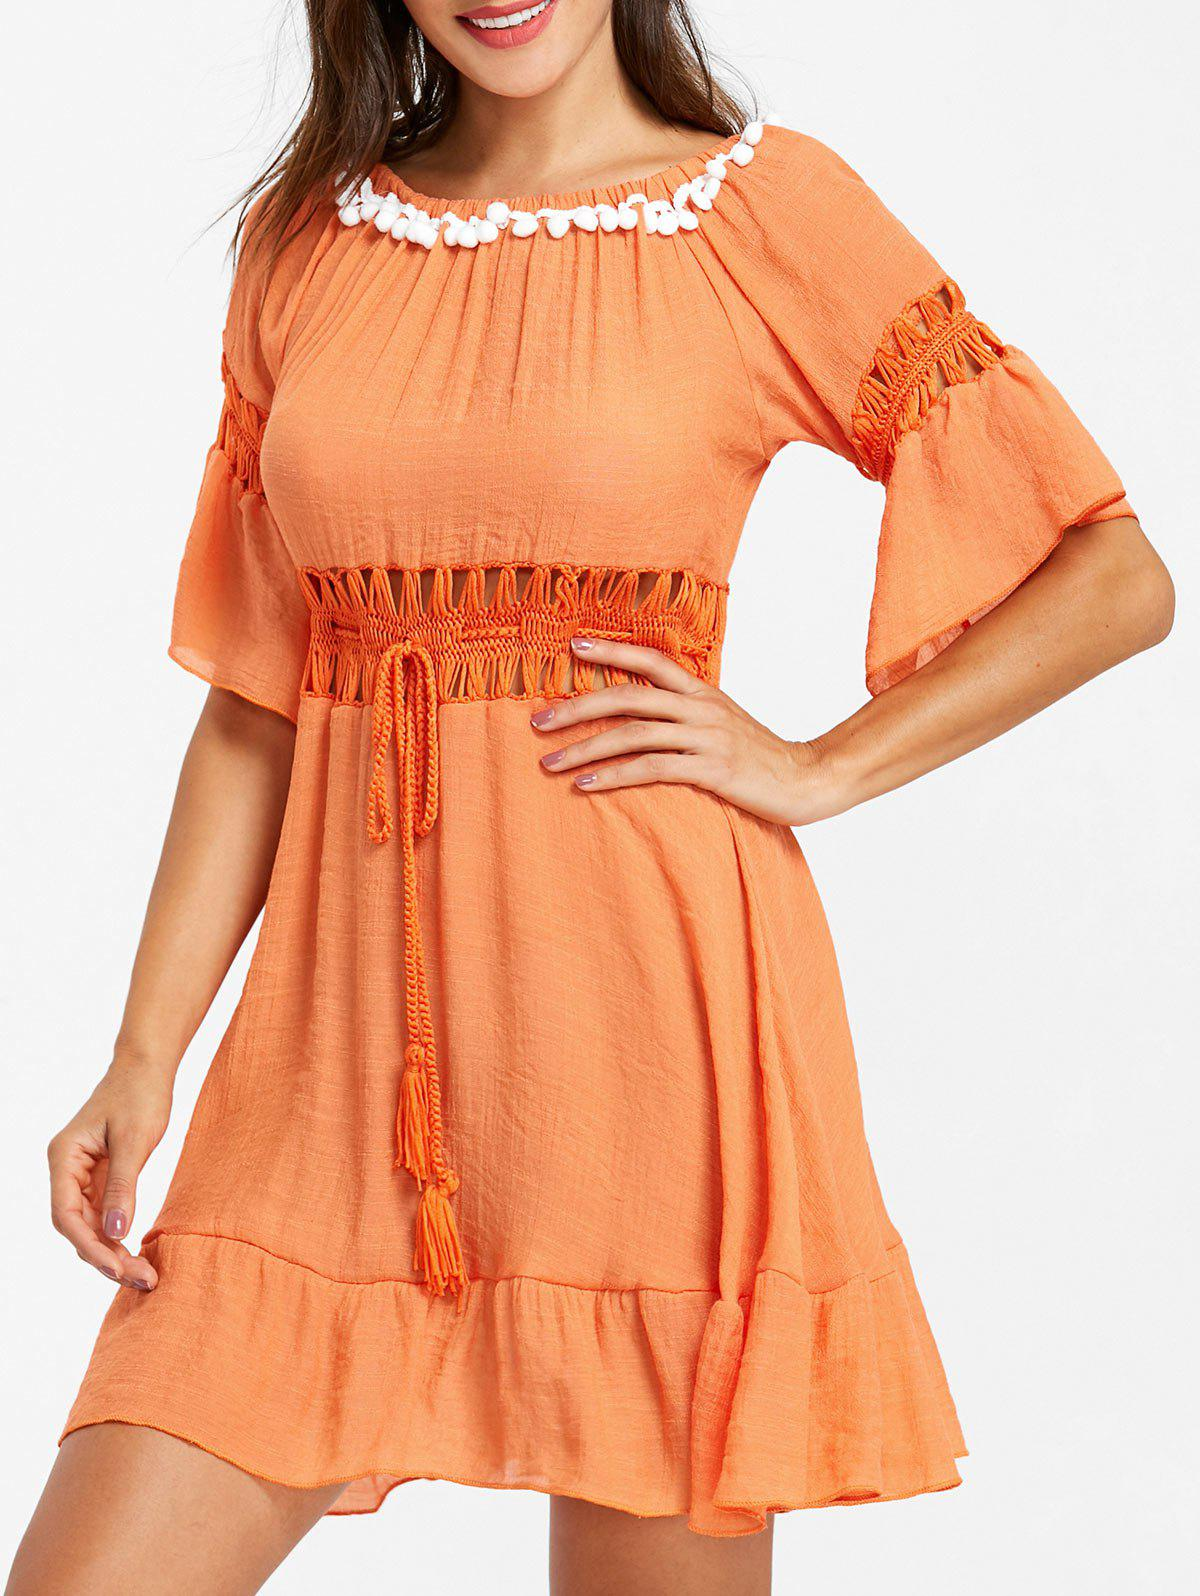 Hot Flare Sleeve Crochet Cover Up